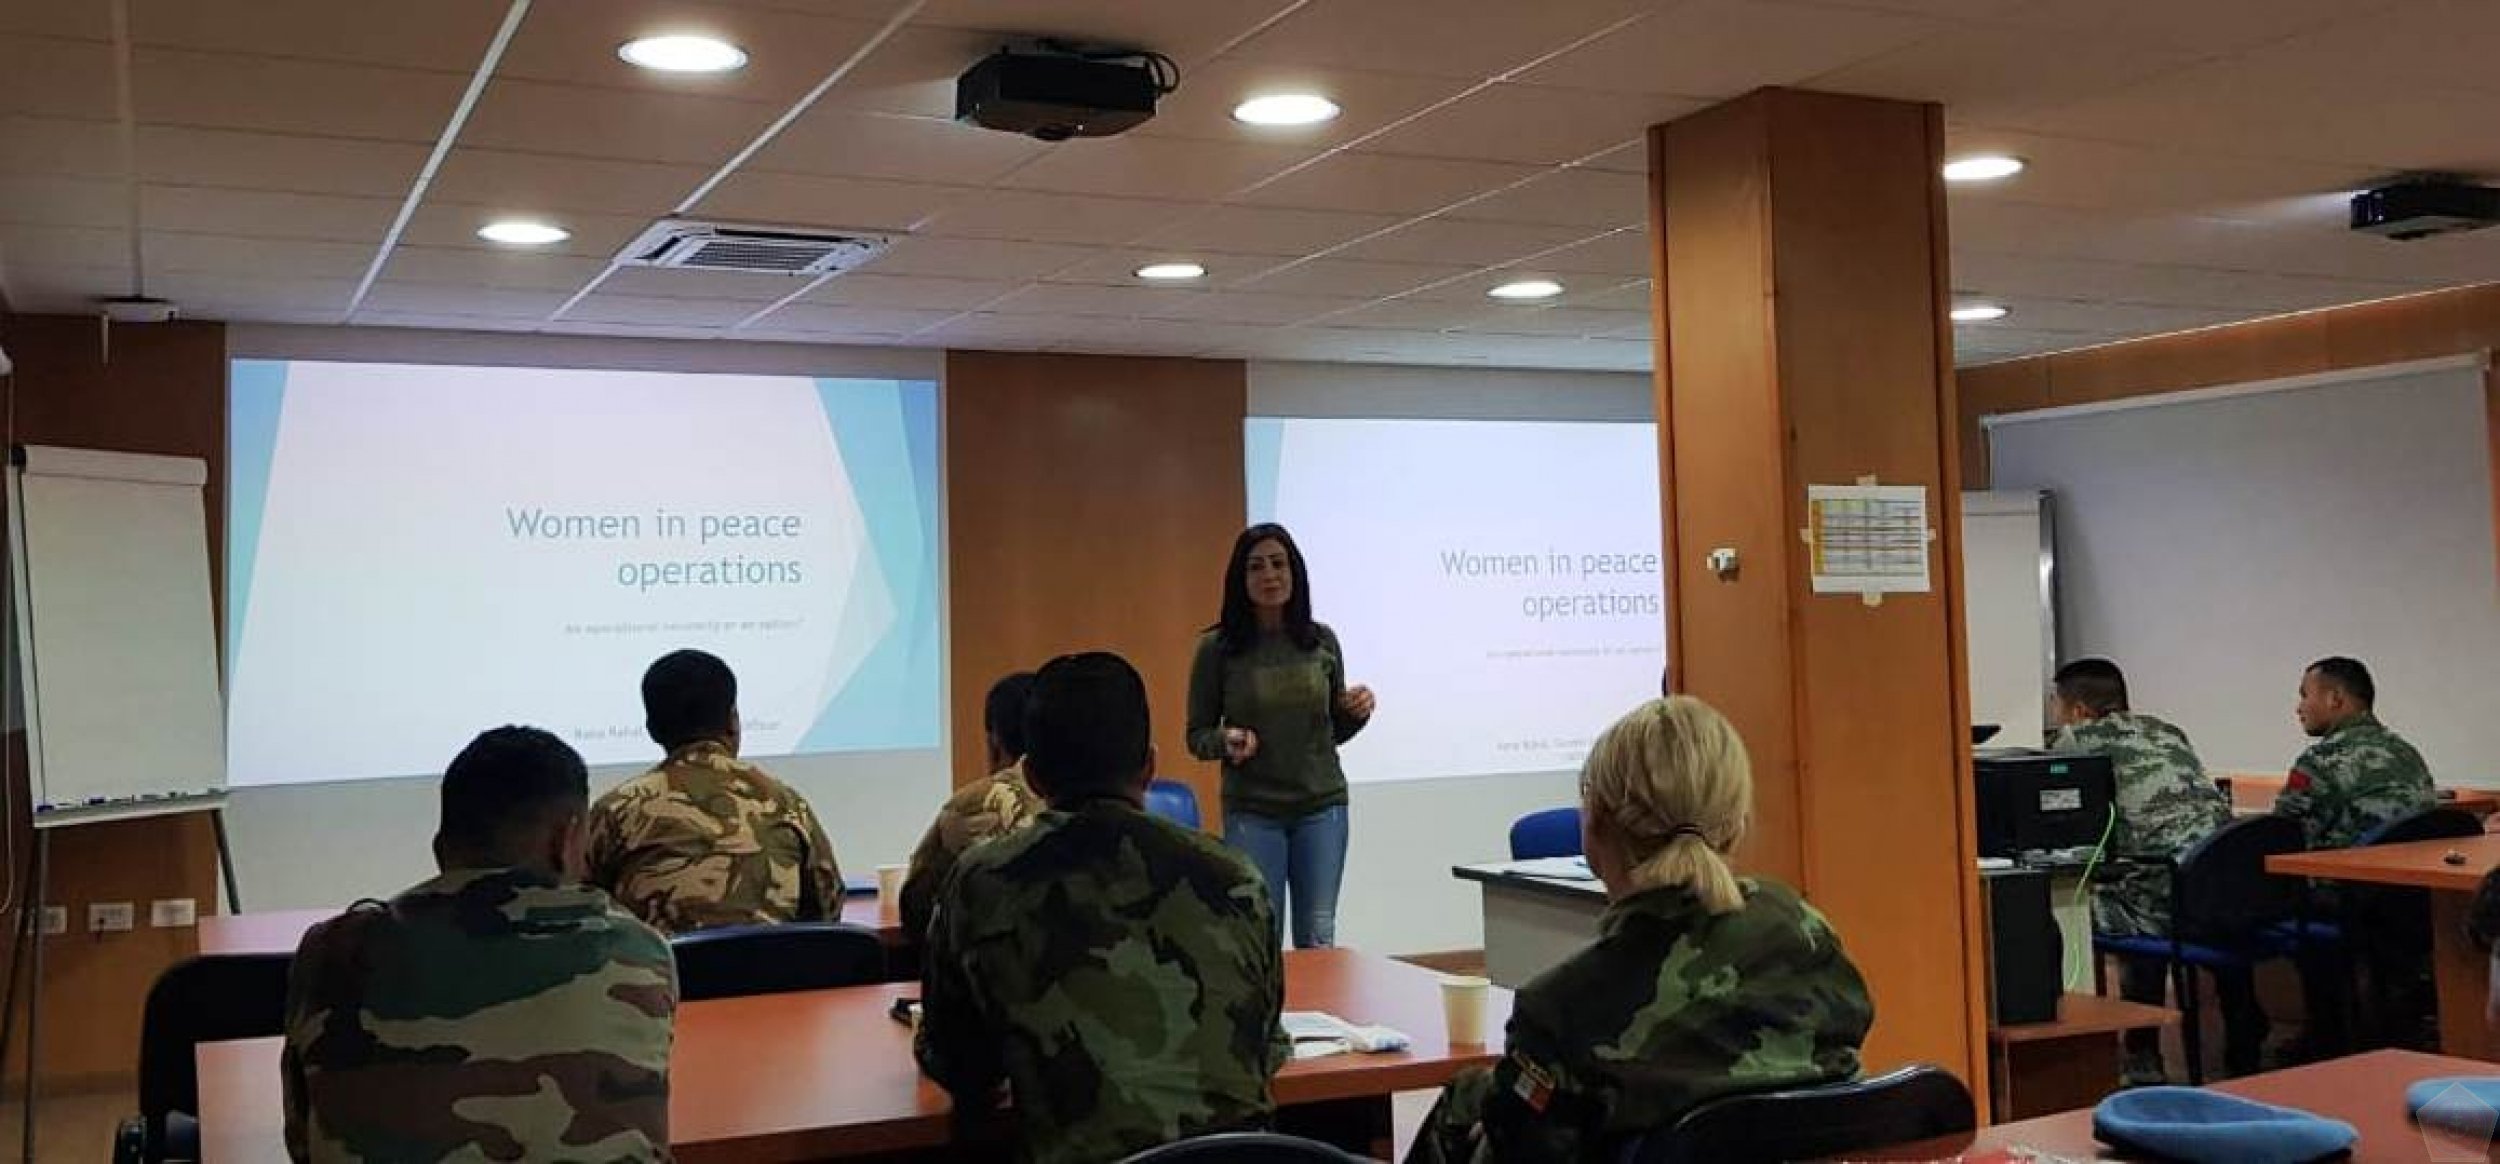 Konga  UNIFIL  Selenggarakan  CIMIC Induction Training di Naqoura Lebanon Selatan